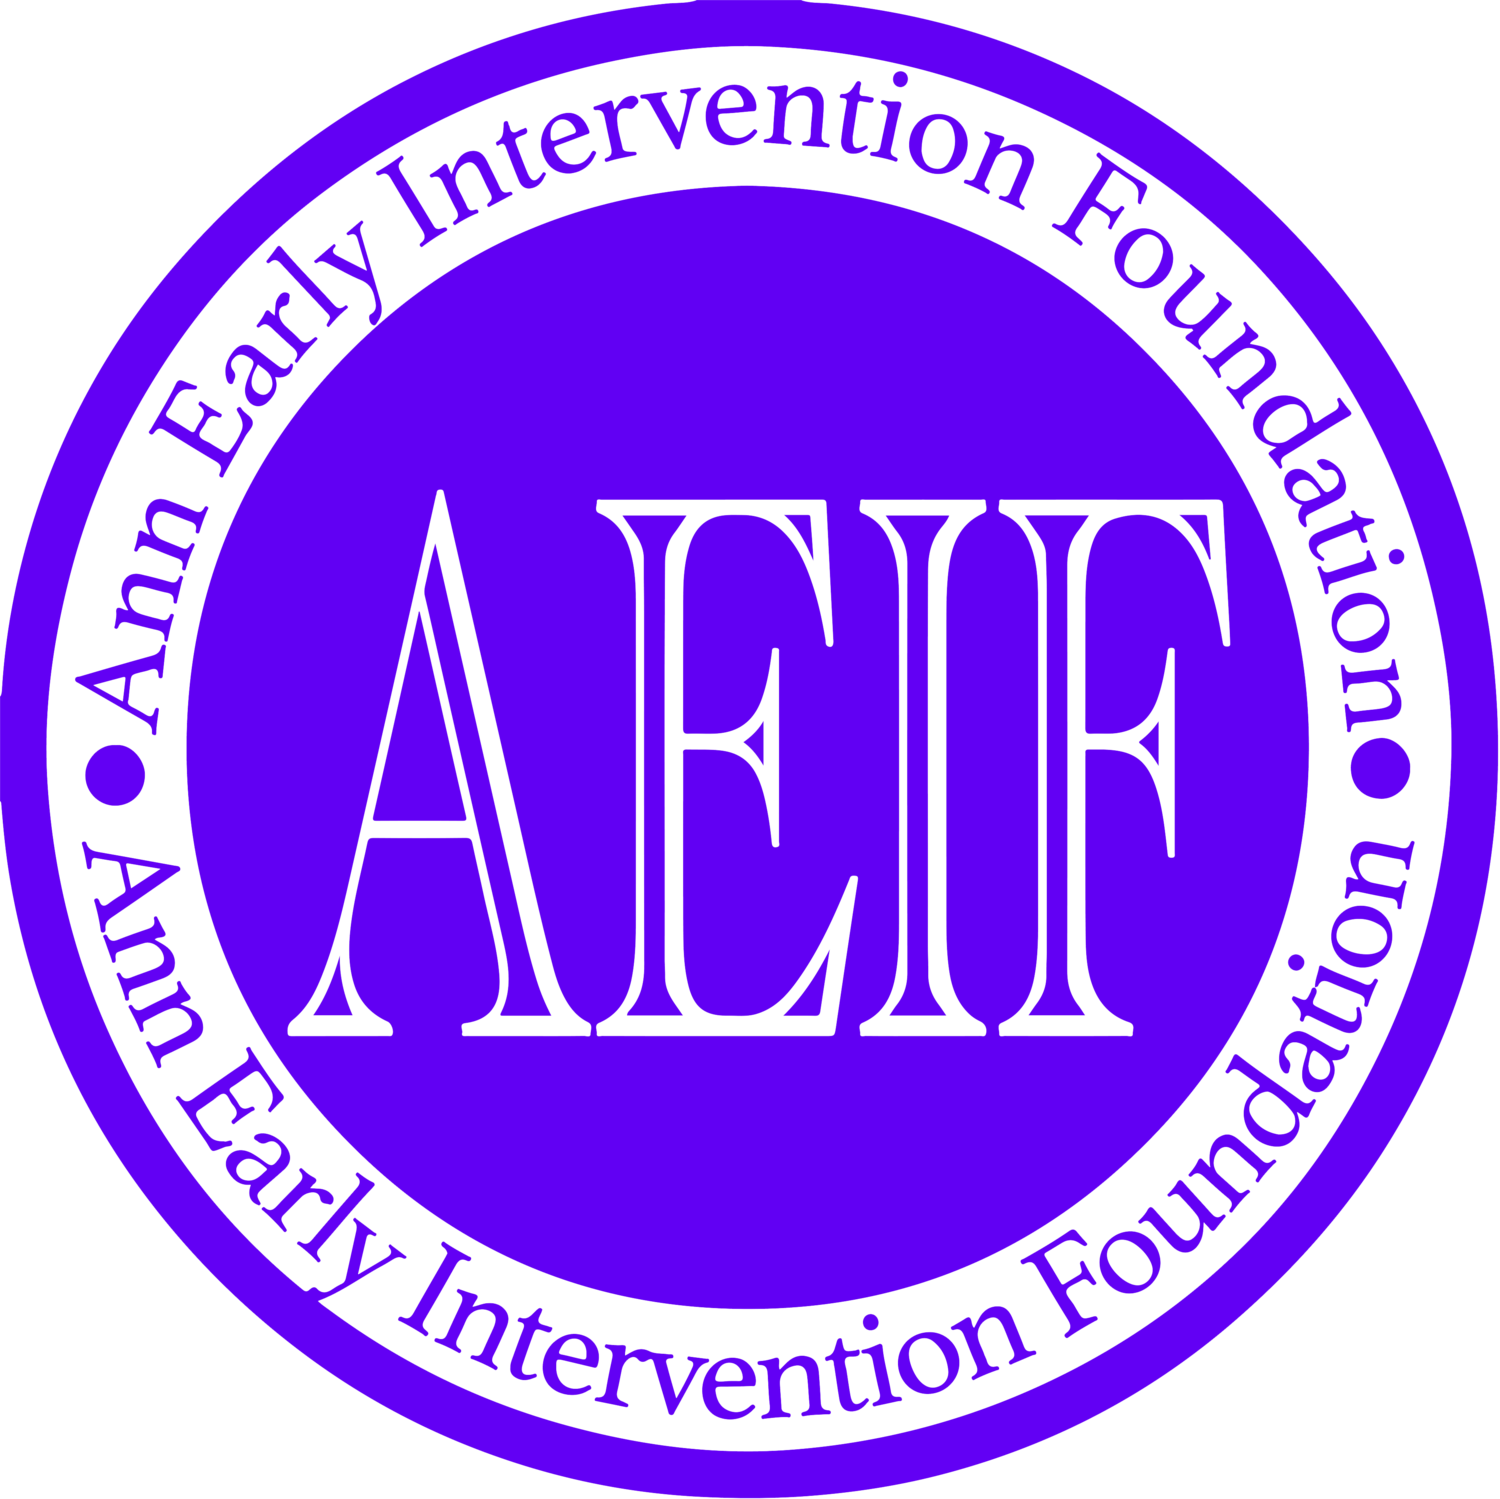 Ann Early Intervention Foundation